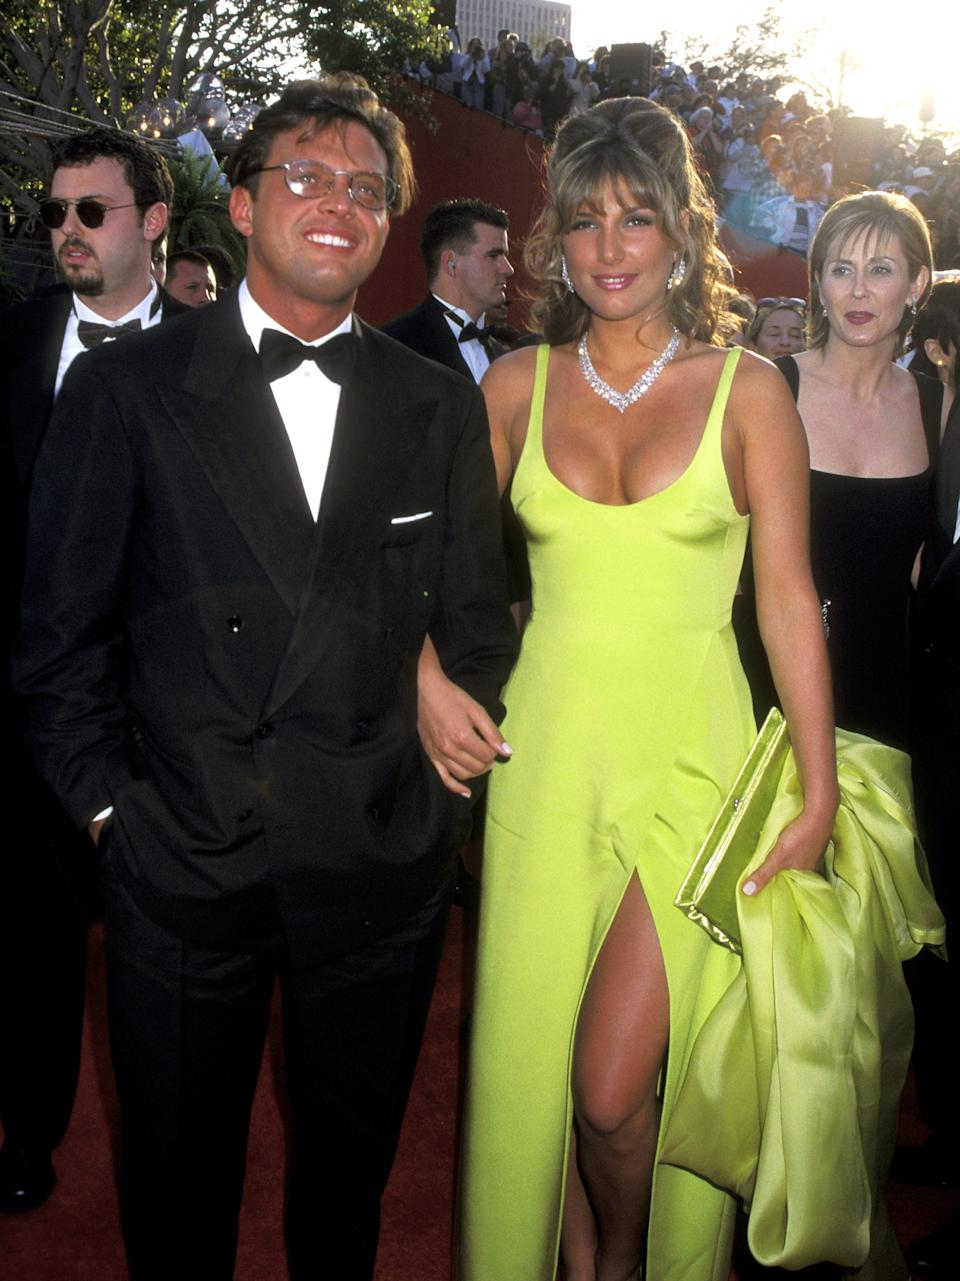 LOS ANGELES - MARCH 25: Latina singer Luis Miguel and actress Daisy Fuentes attended the 68th Annual Academy Awards on March 25, 1996 at the Dorothy Chandler Pavilion in Los Angeles, California.  (Photo by Ron Galella, Ltd / The Ron Galella Group via Getty Images)